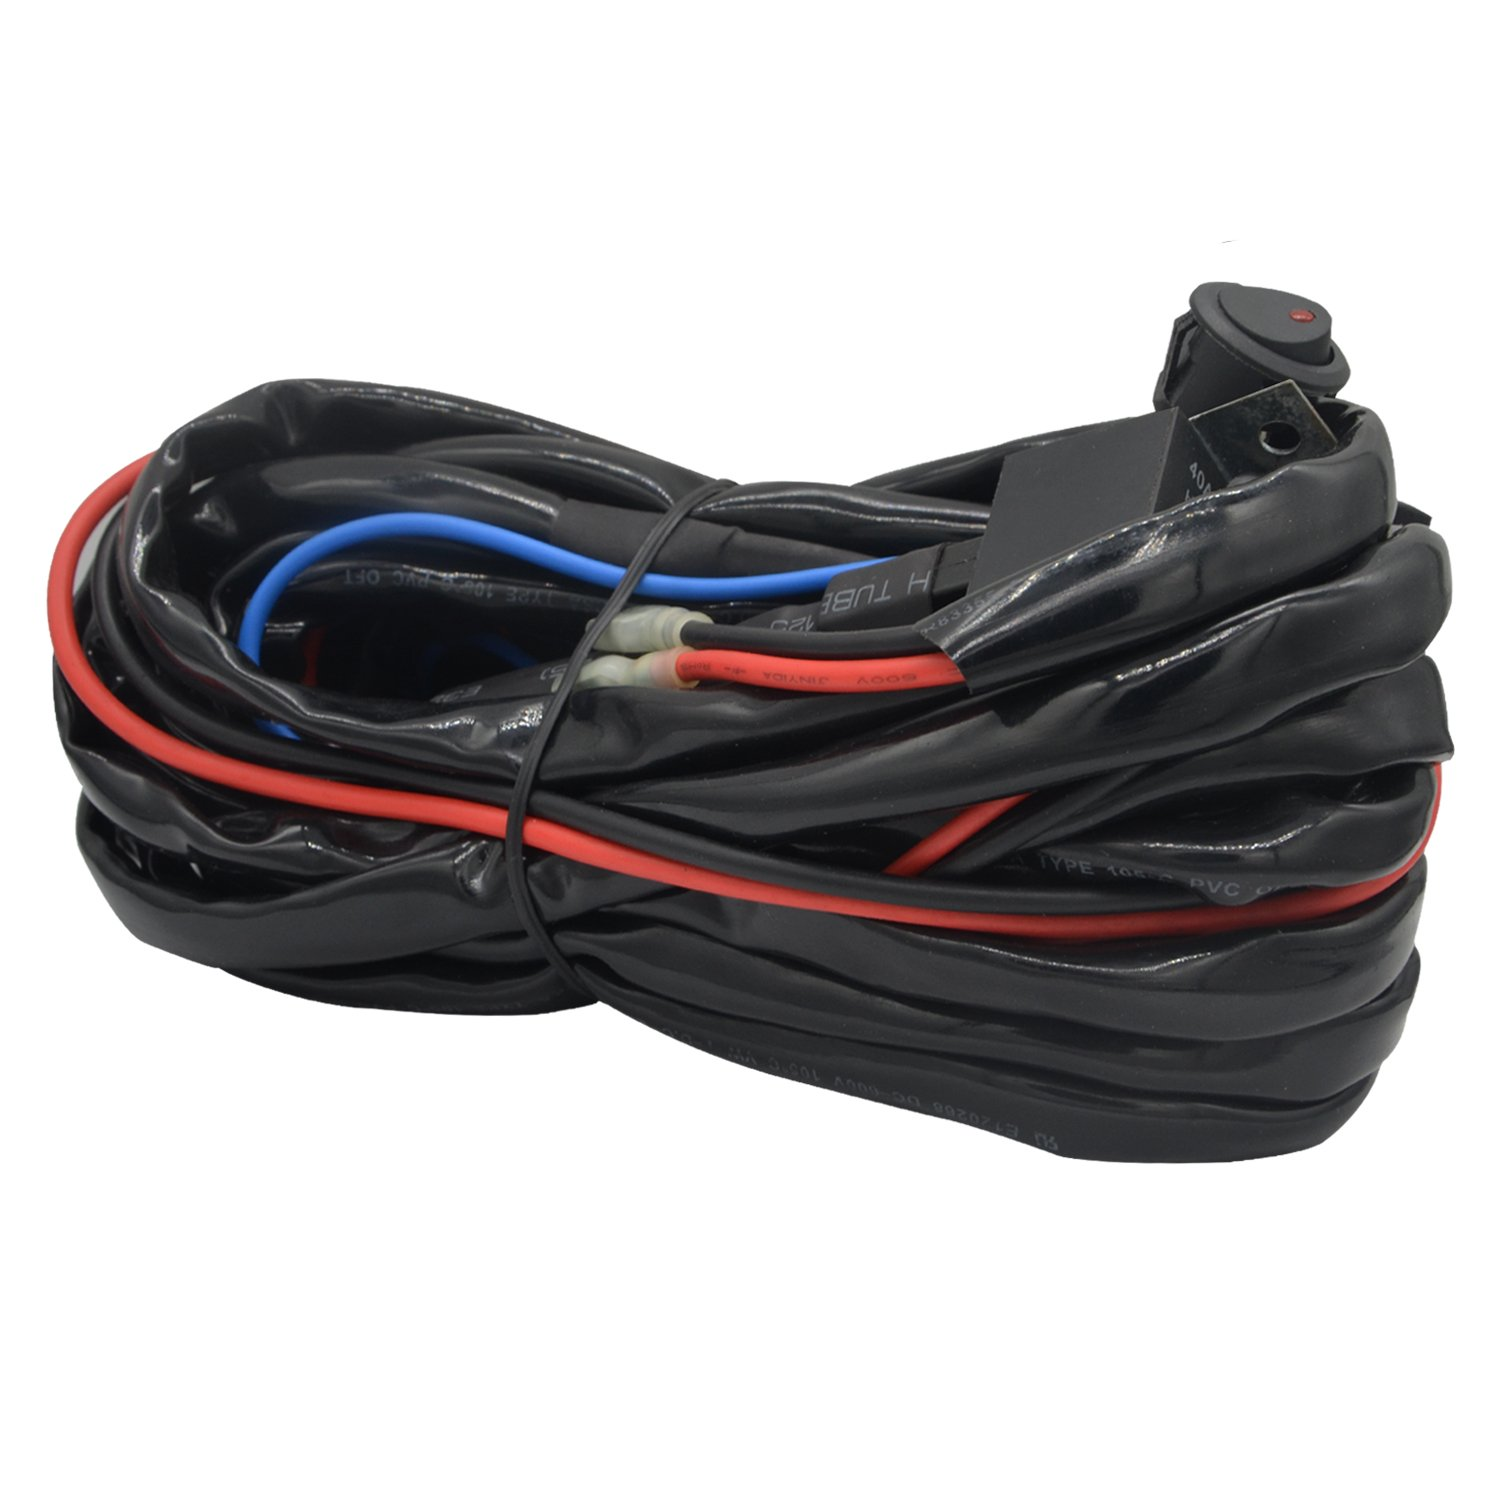 71hdbgsGjCL._SL1500_ amazon com wiring harnesses electrical automotive  at bakdesigns.co